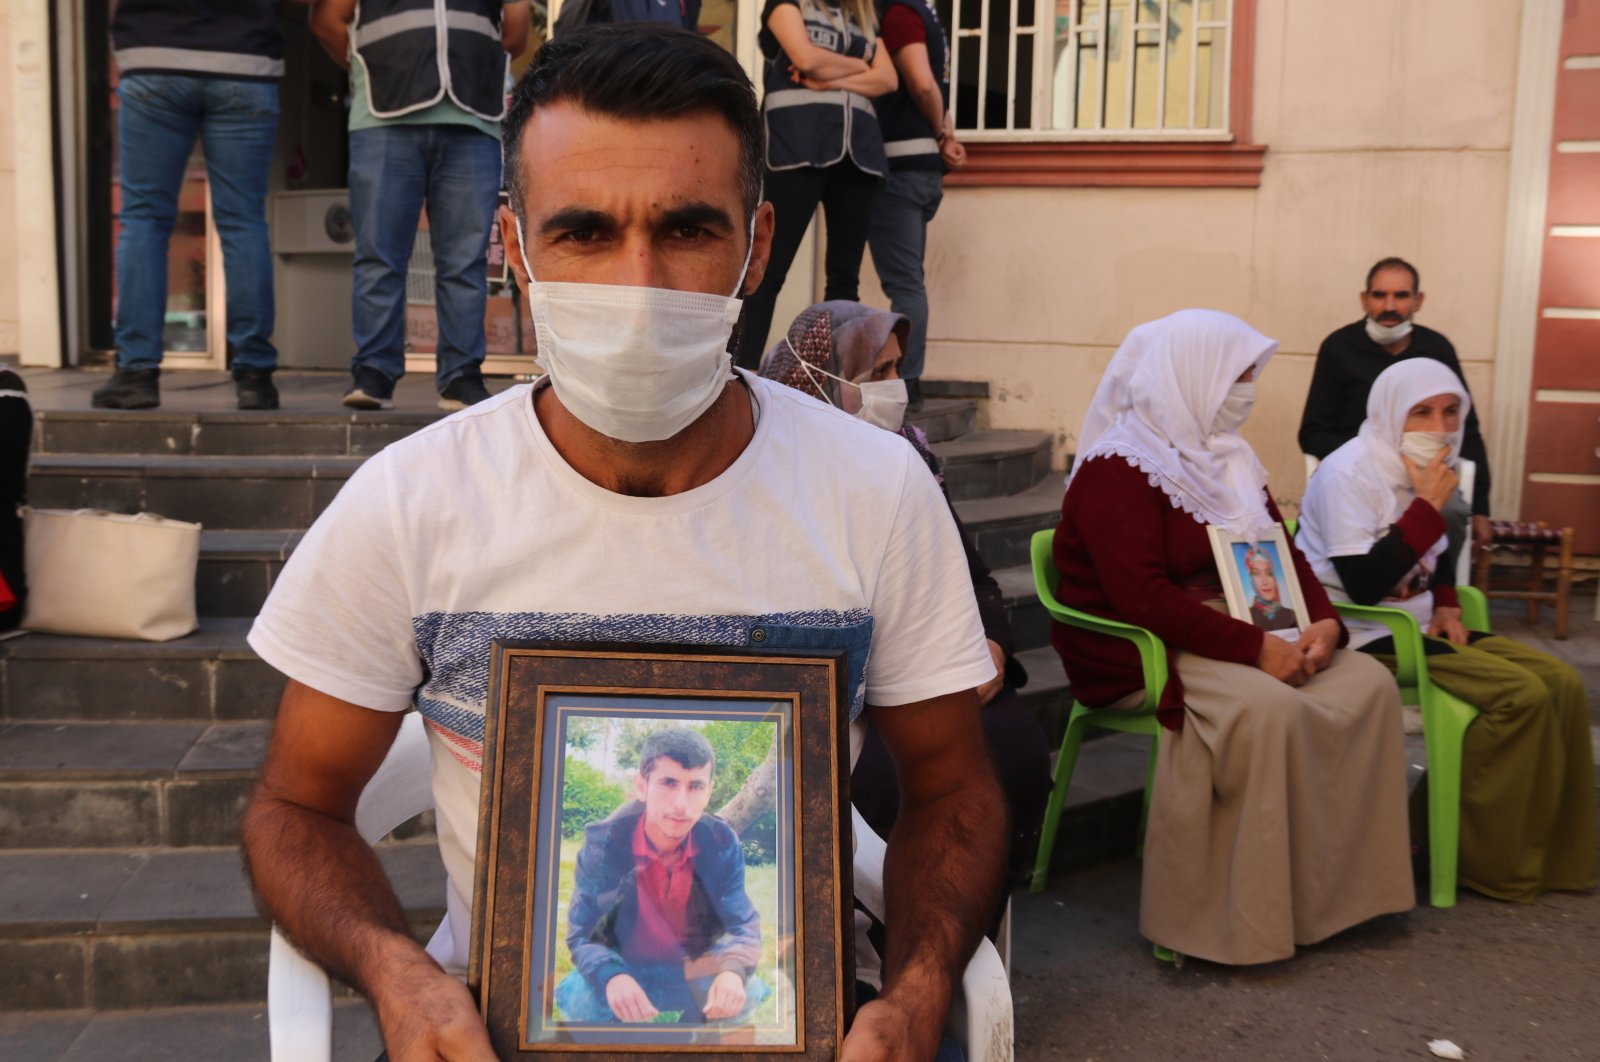 Ahmet Kurt holds a photograph of his kidnapped brother during a sit-in against the pro-PKK Peoples' Democratic Party (HDP) and the PKK terrorist group, in Diyarbakır province, Turkey, Oct. 18, 2020. (AA Photo)